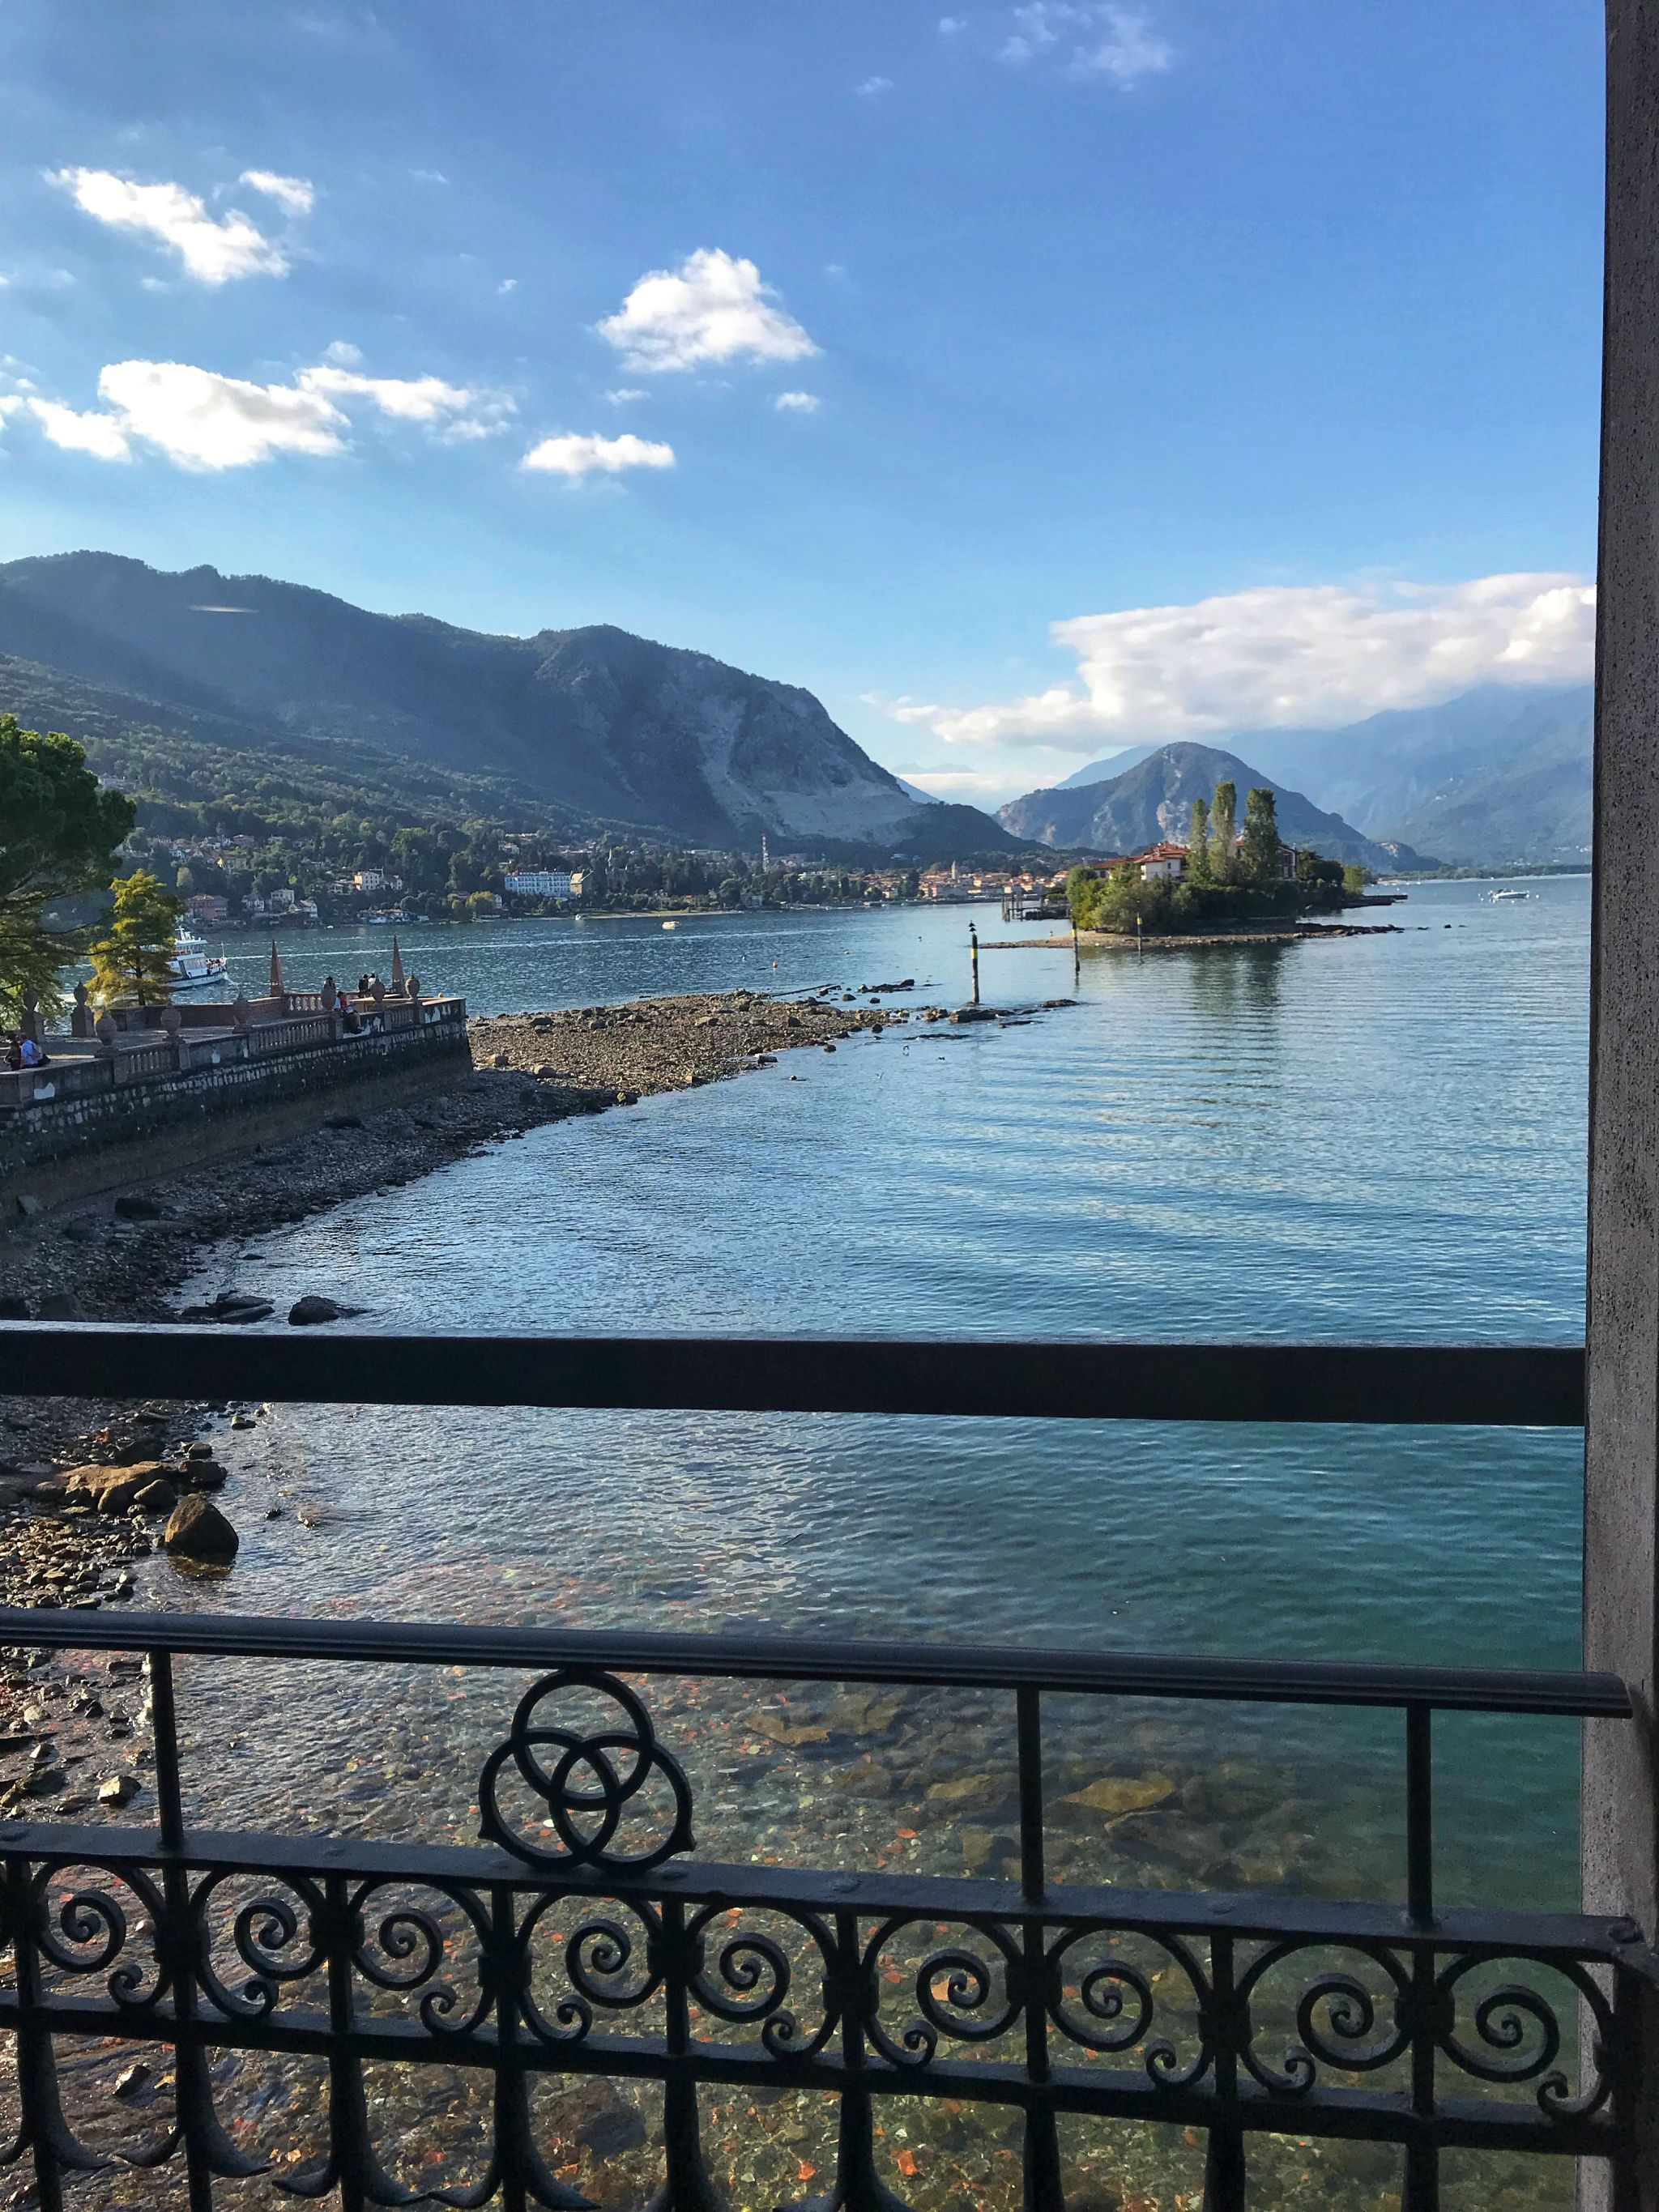 Beautiful scenic Lake Maggiore views from Palazzo Borromee